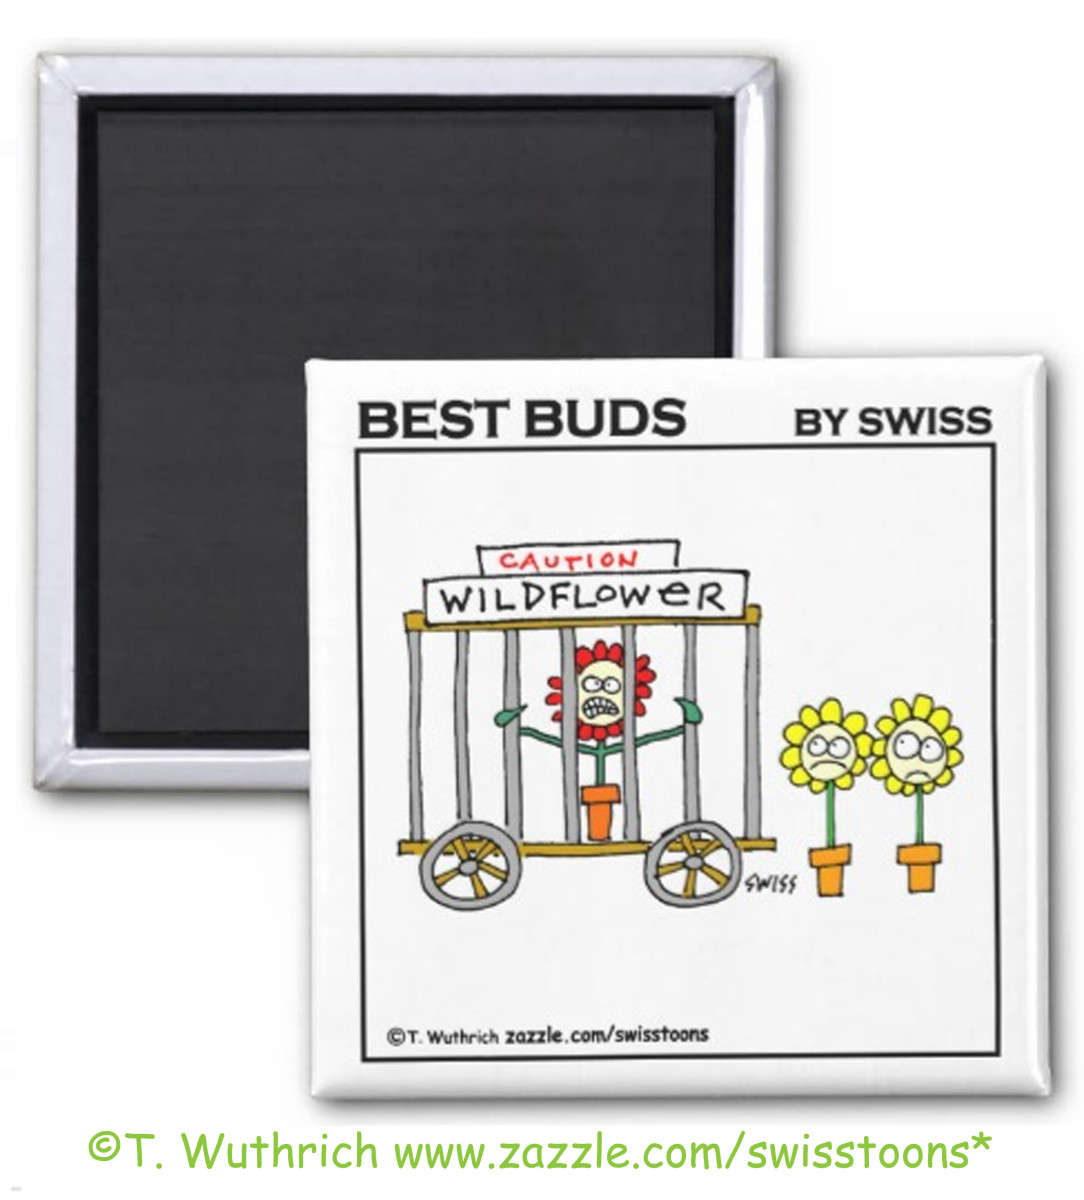 Hilarious wildflower cartoon magnet for a favorite gardener by Swisstoons.